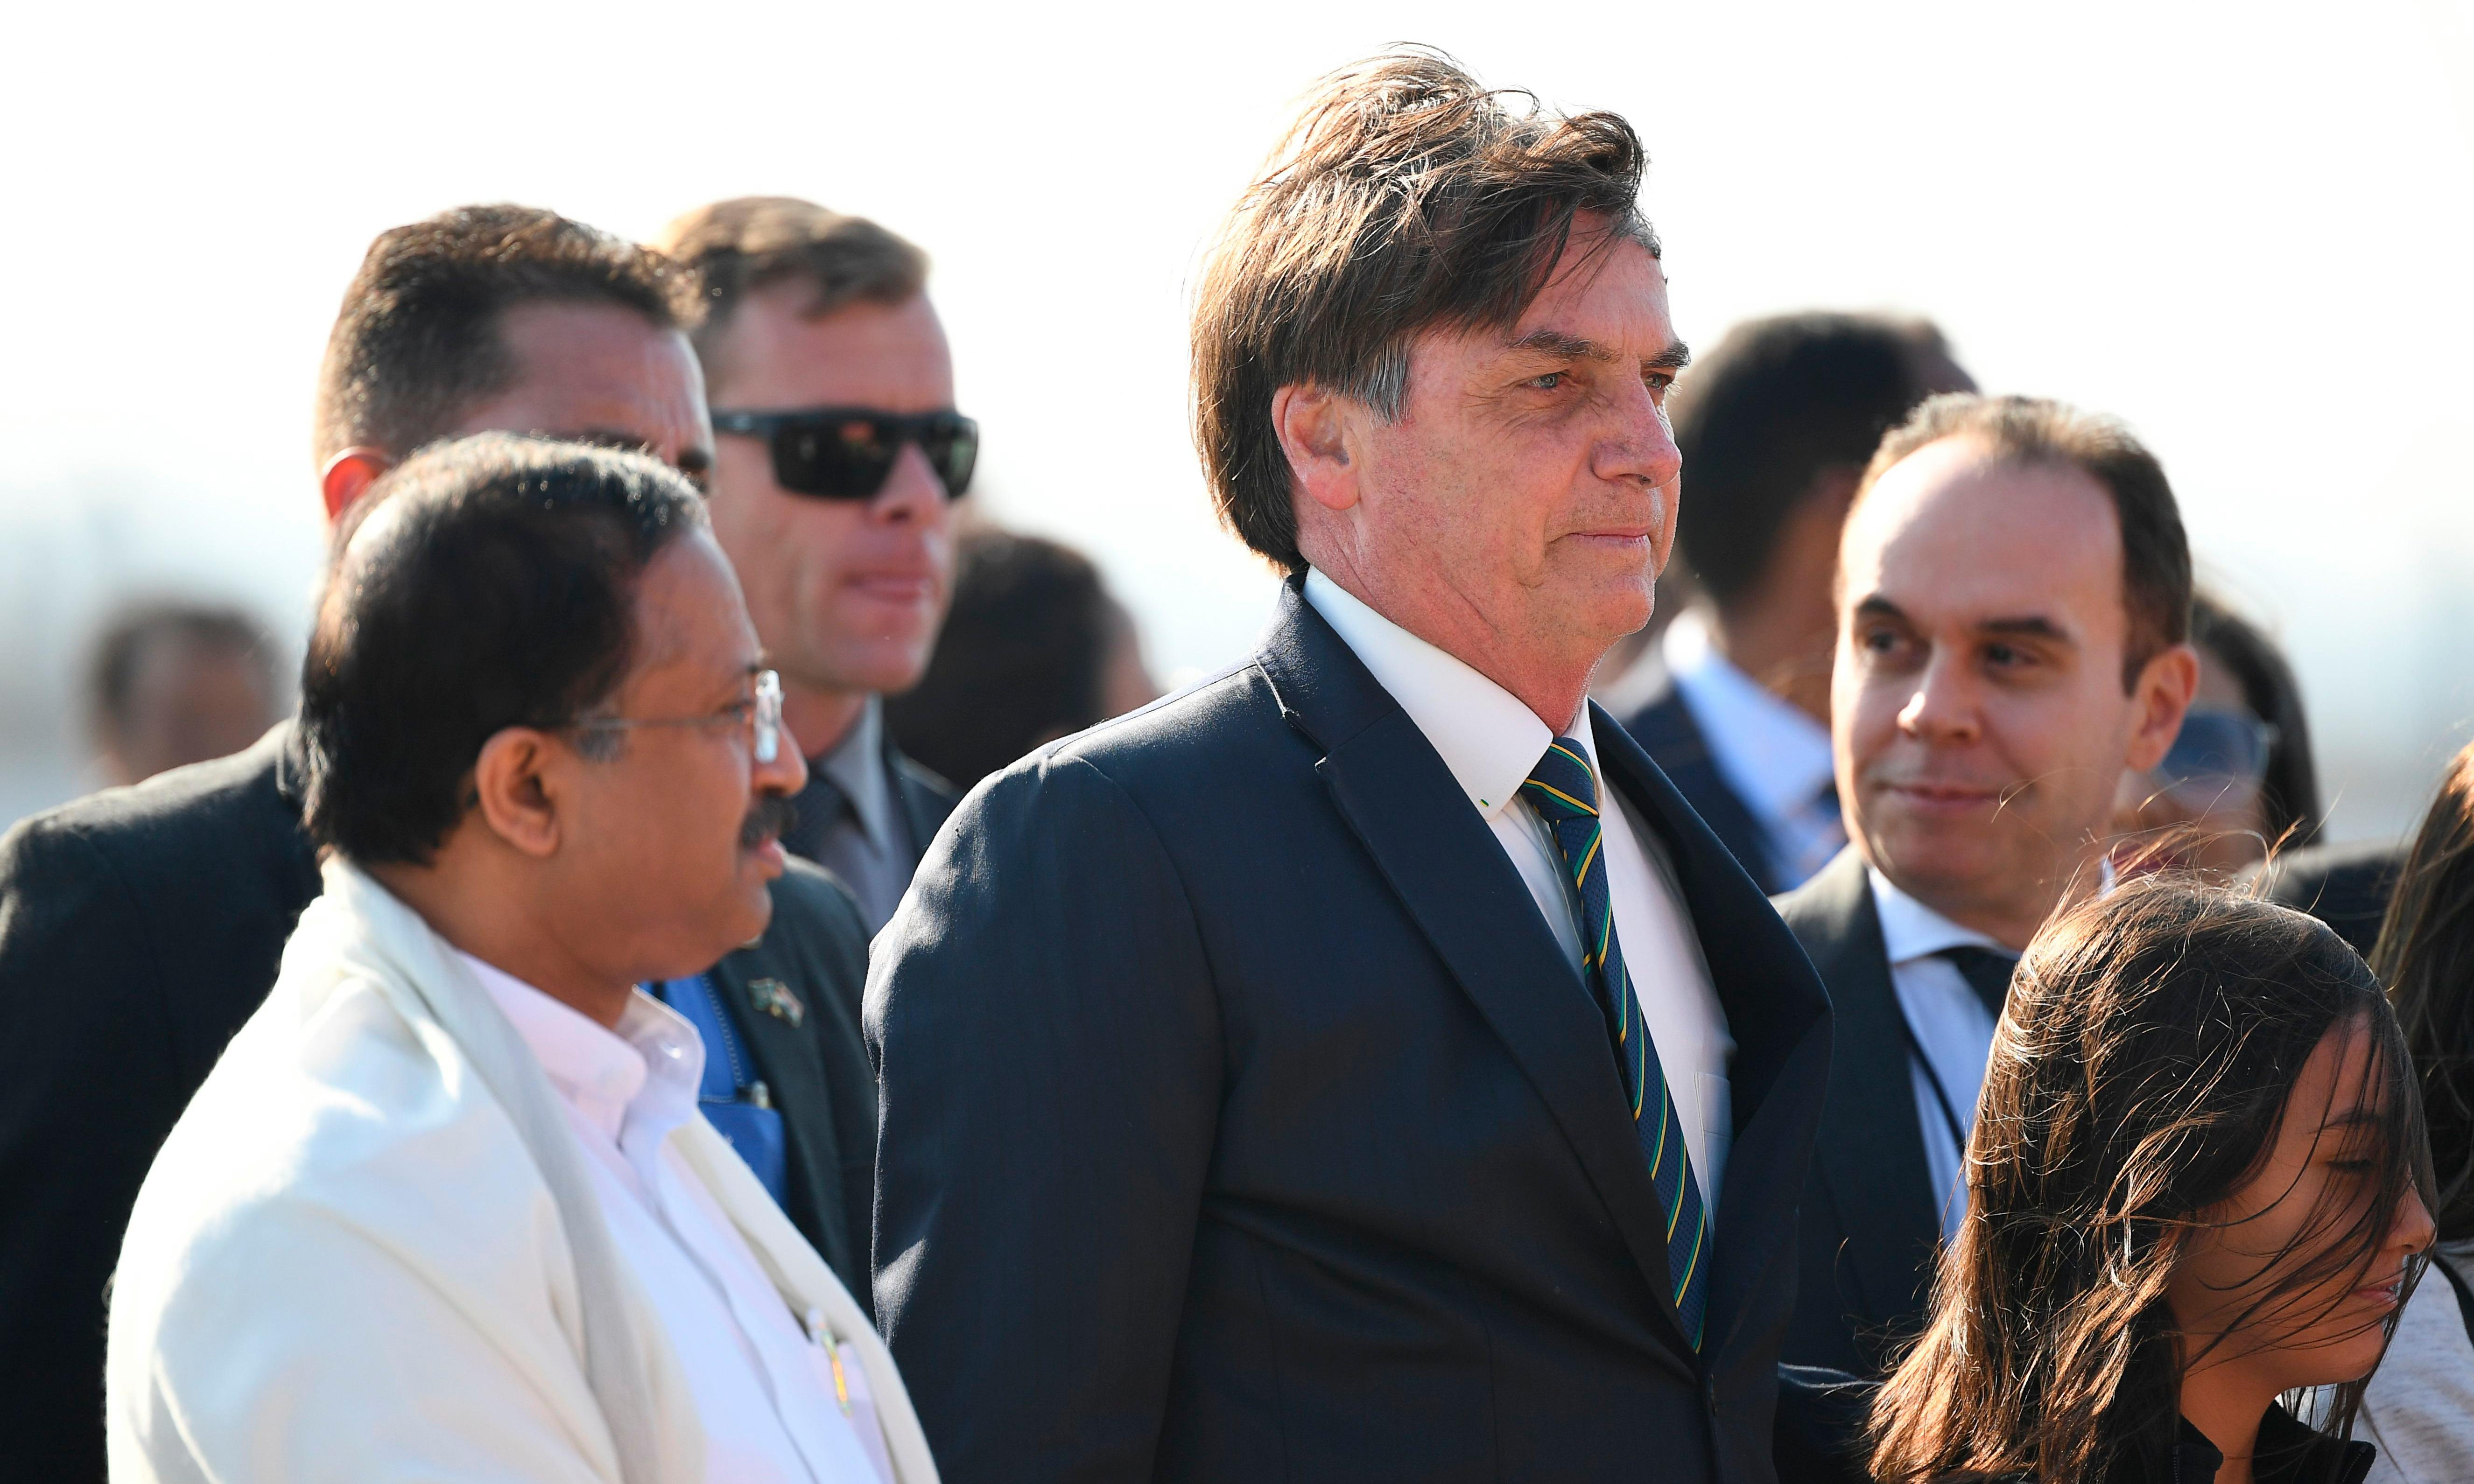 Jair Bolsonaro's racist comment sparks outrage from indigenous groups